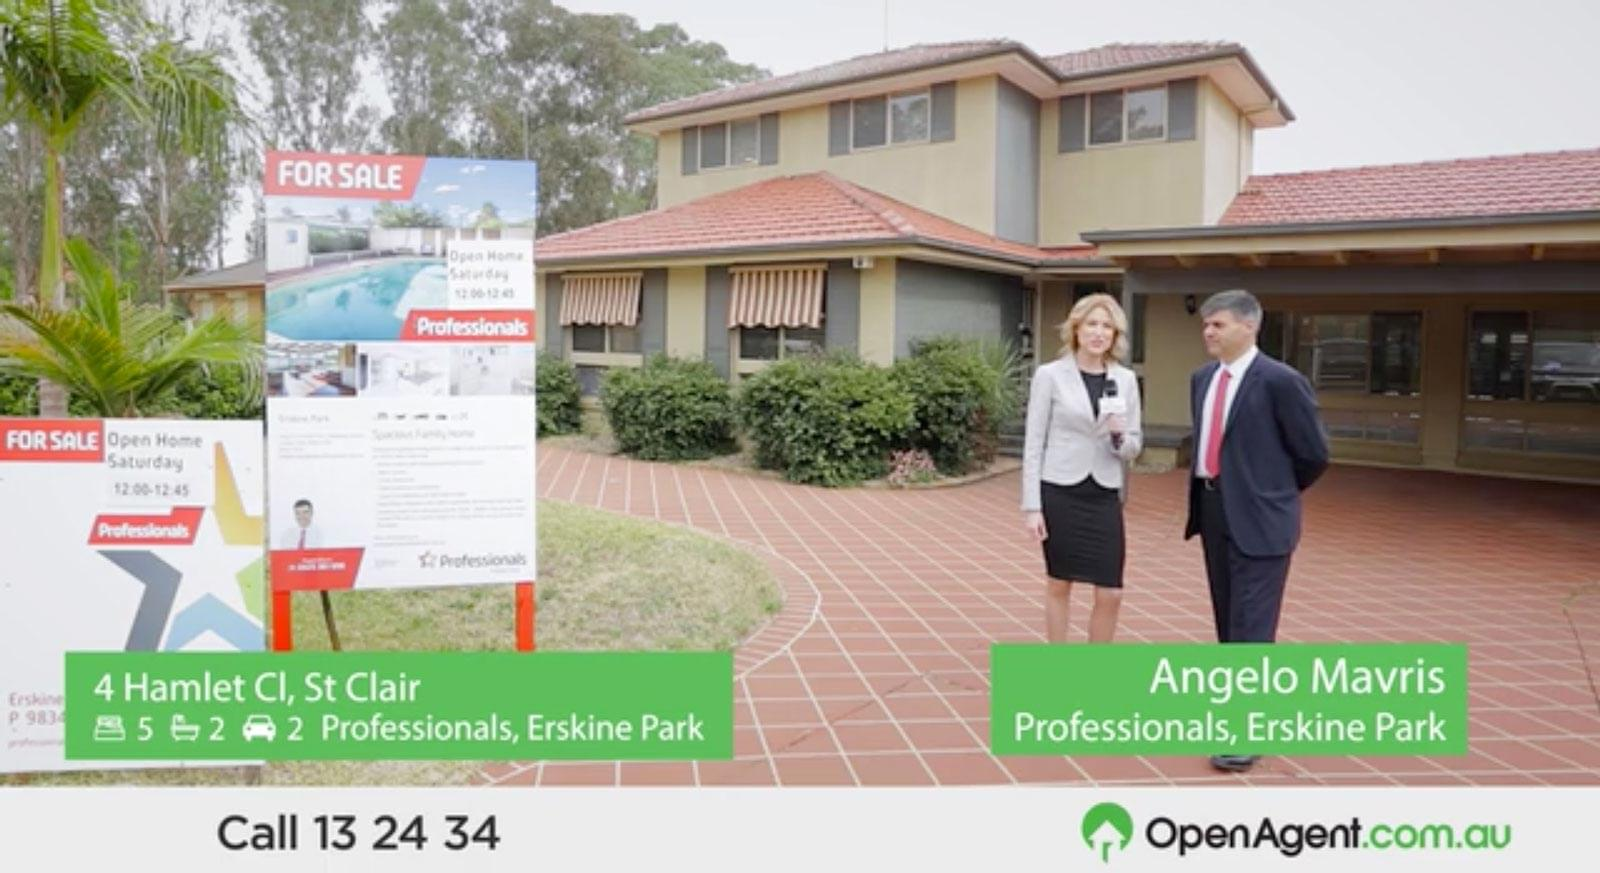 OpenAgent Article - OpenAgent TV Magazine: Episode 14 - An impressive spacious family home in a quiet cul-de-sac in St Clair